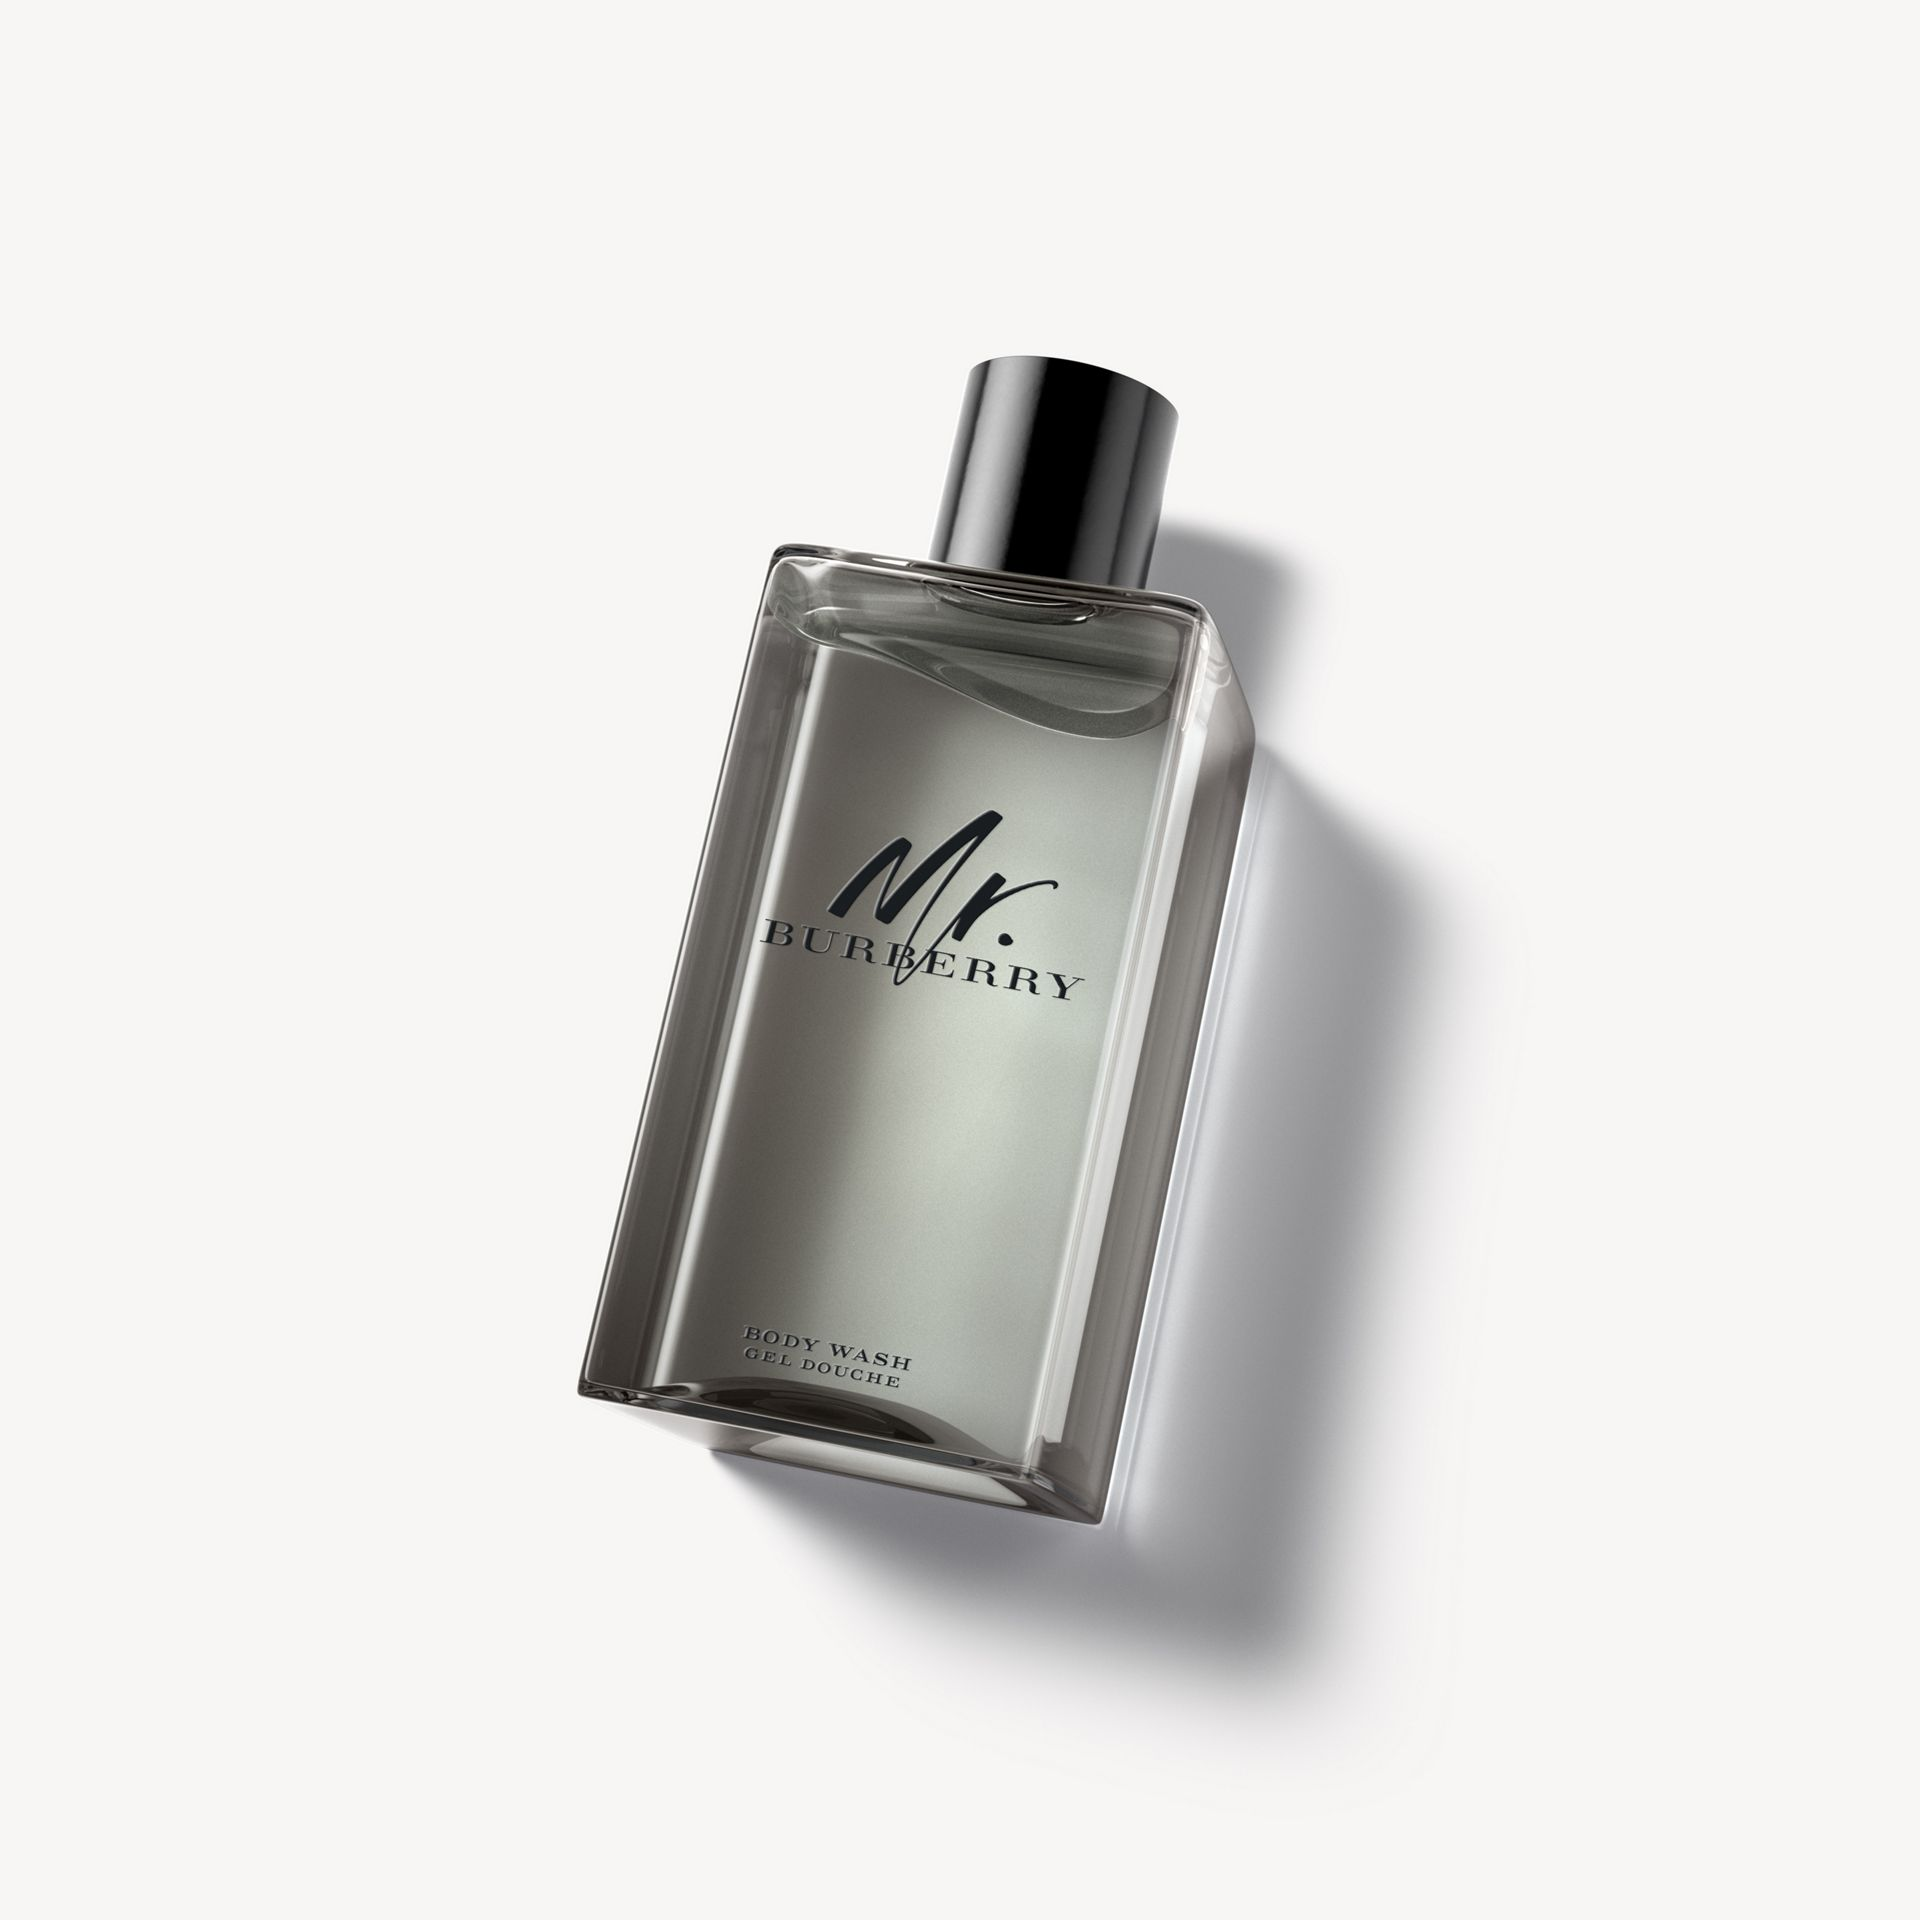 Mr. Burberry Duschlotion 250 ml - Galerie-Bild 1